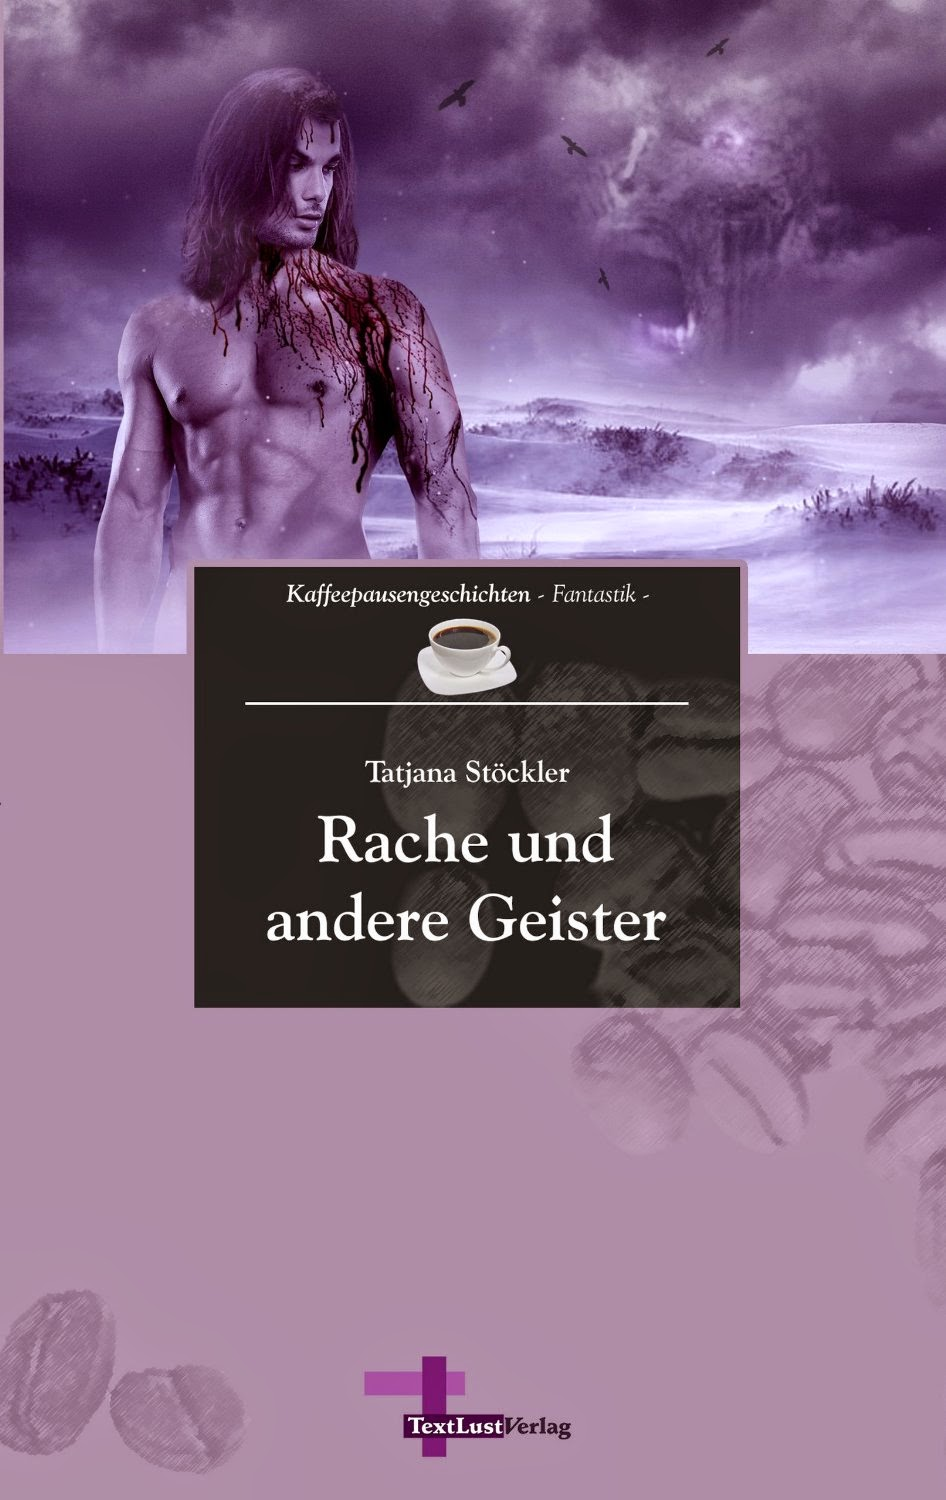 http://www.textlustverlag.de/buecher/ebooks/book.php?id=kp08